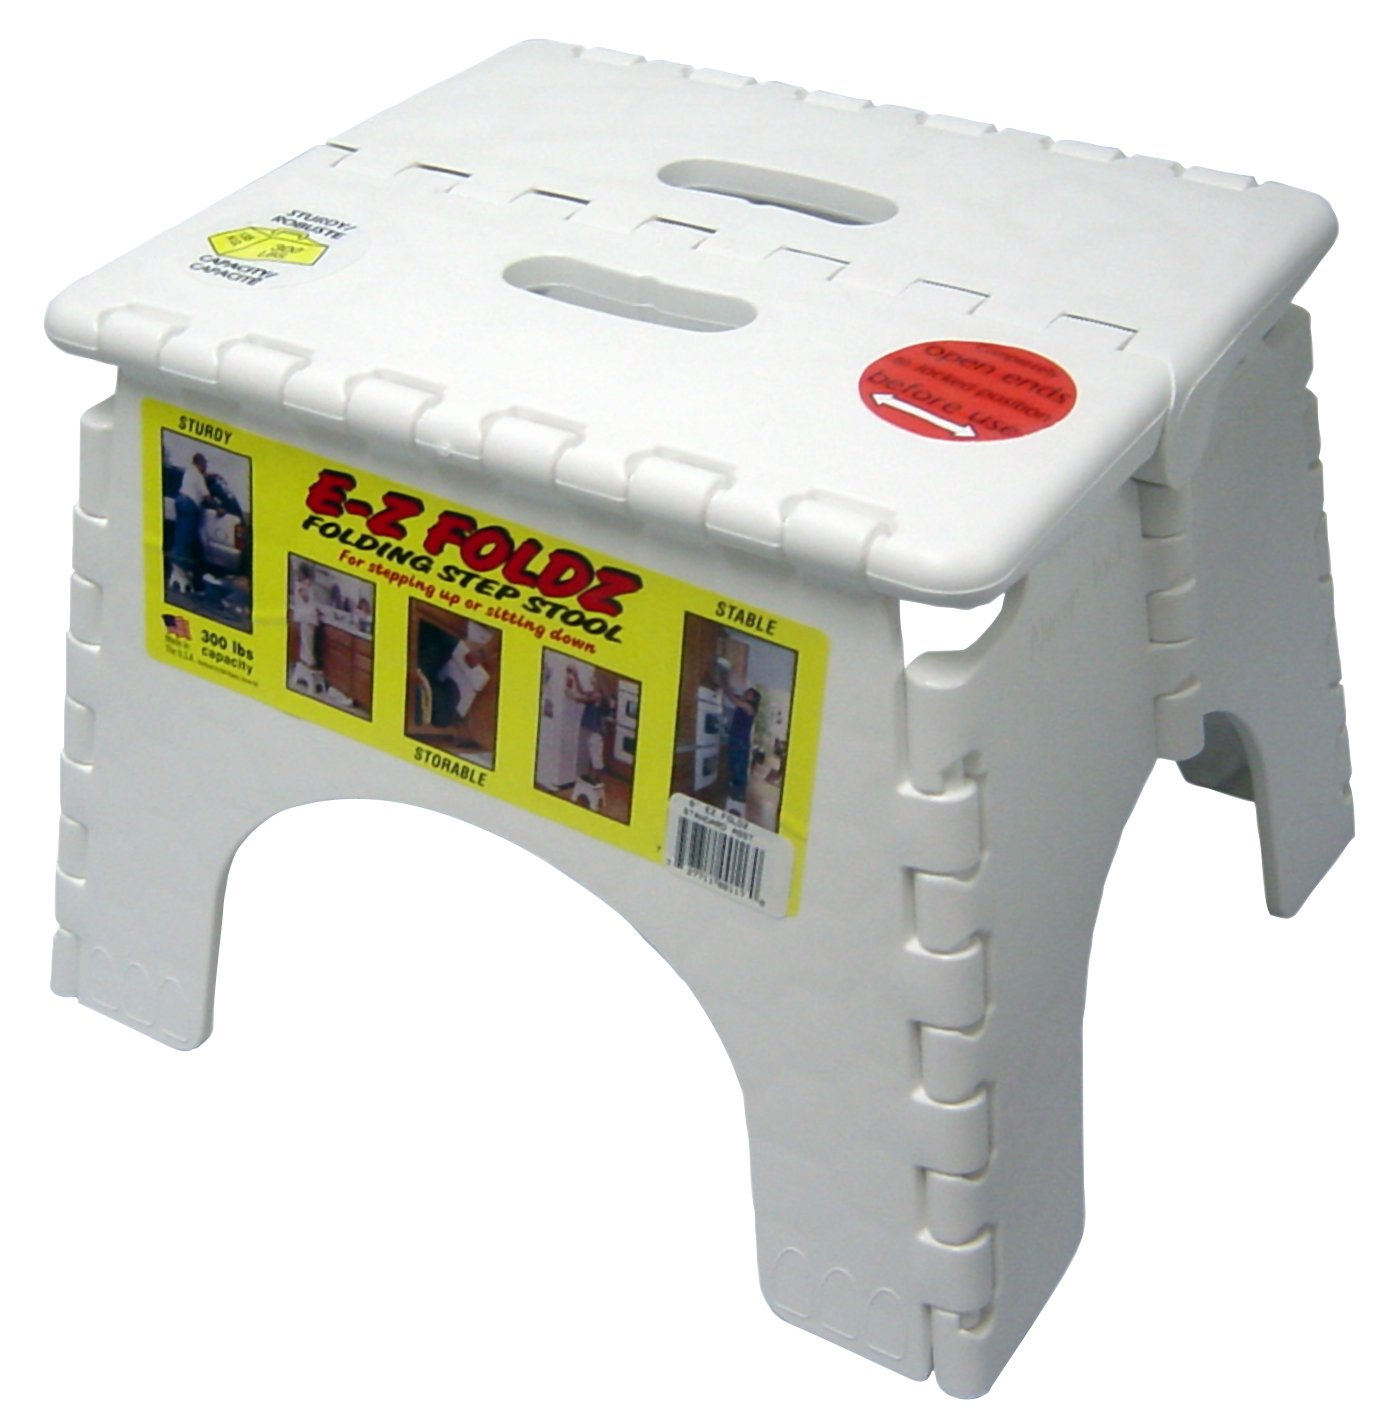 Amazon.com Bu0026R Plastics 101-6 EZ 9-Inch Foldz Step Stool White Automotive  sc 1 st  Amazon.com & Amazon.com: Bu0026R Plastics 101-6 EZ 9-Inch Foldz Step Stool White ... islam-shia.org